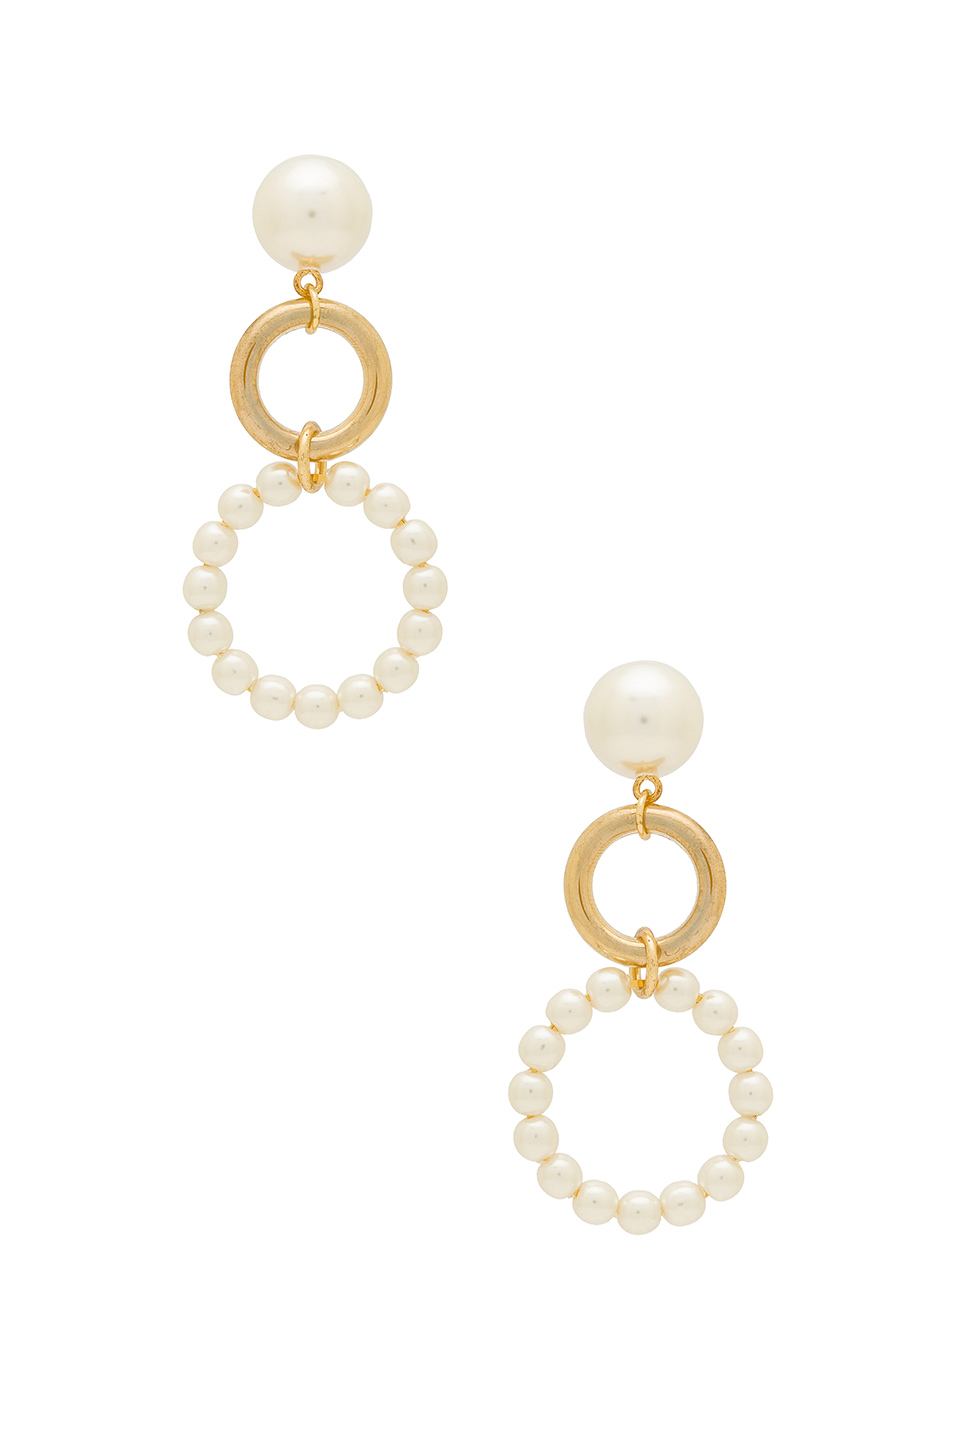 Gold and Pearl earrings